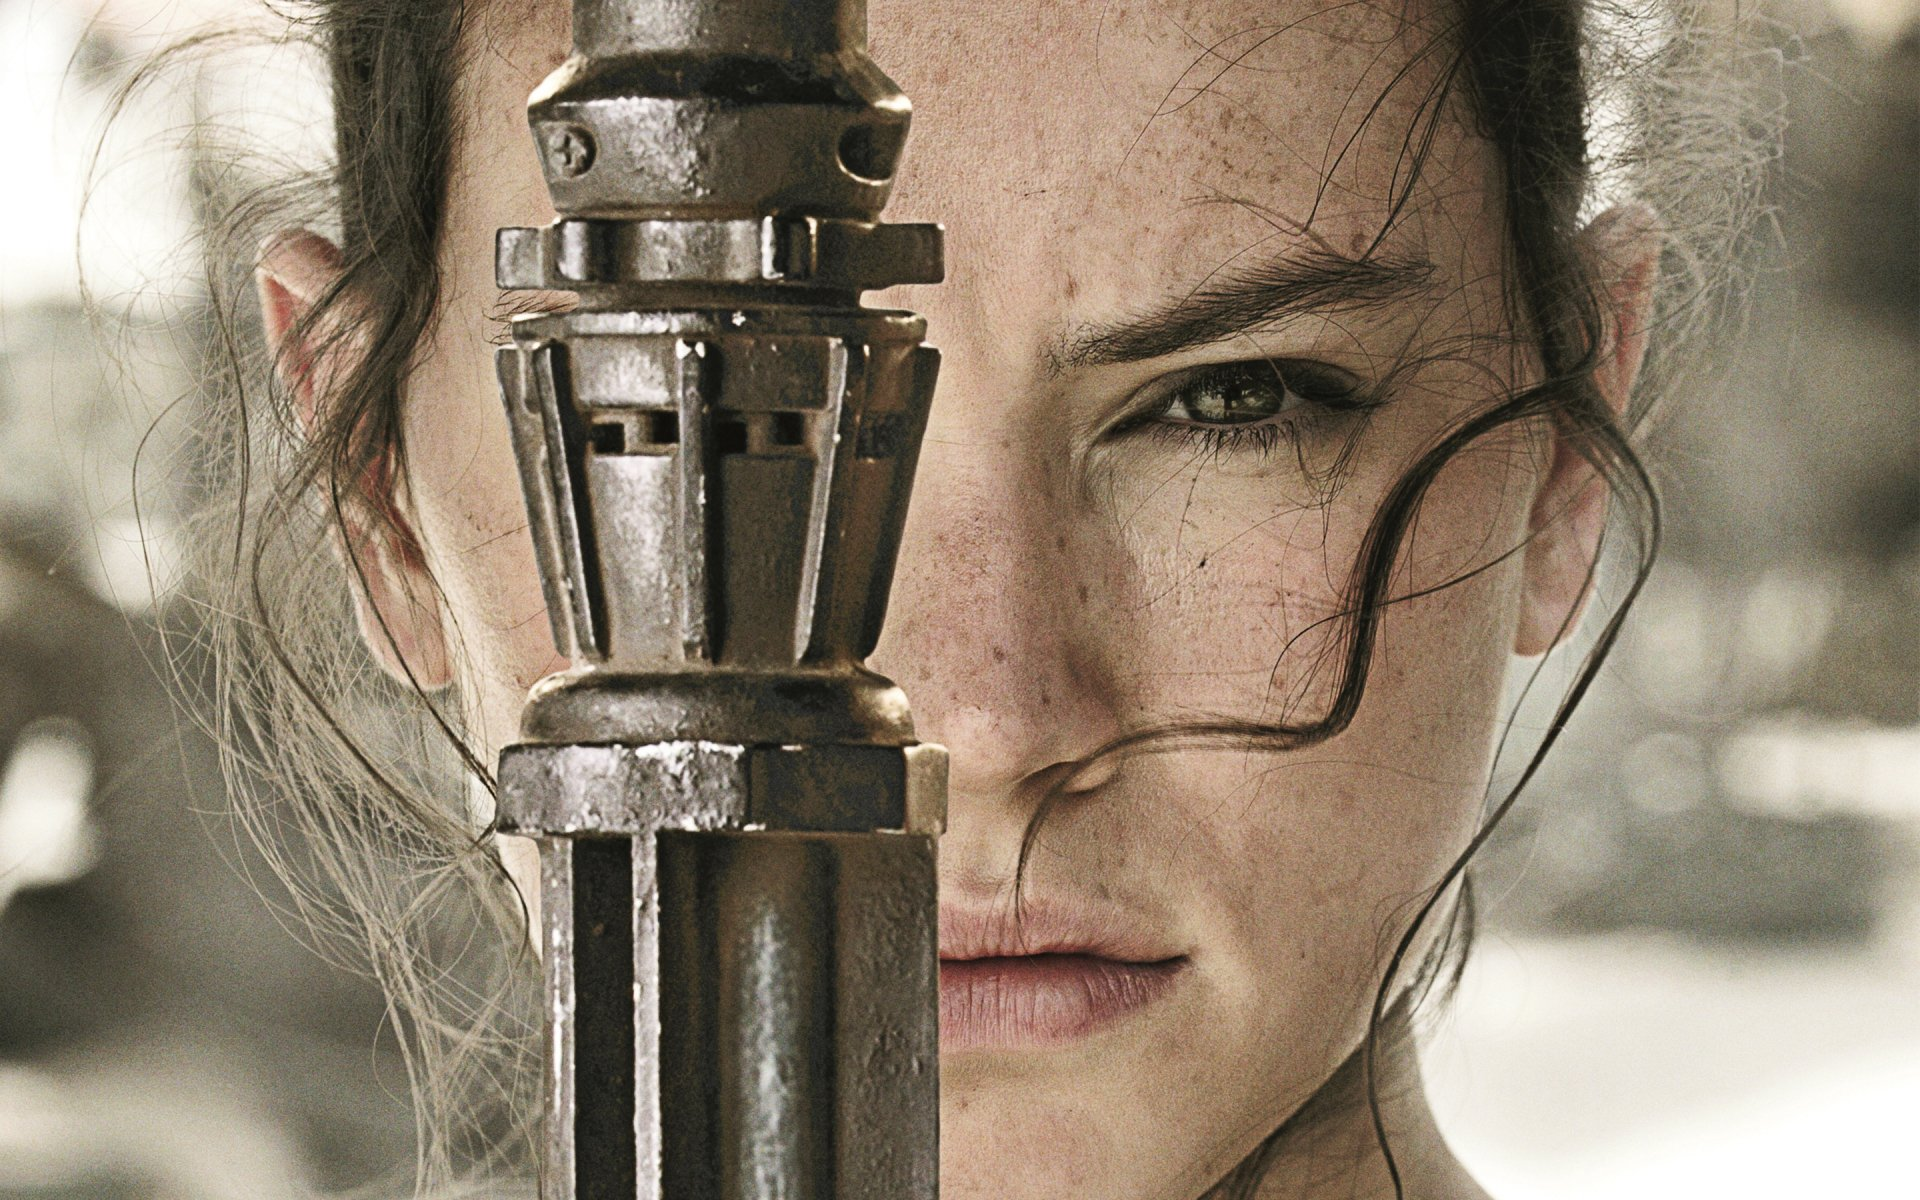 Movie - Star Wars Episode VII: The Force Awakens  Daisy Ridley Rey (Star Wars) Star Wars Wallpaper